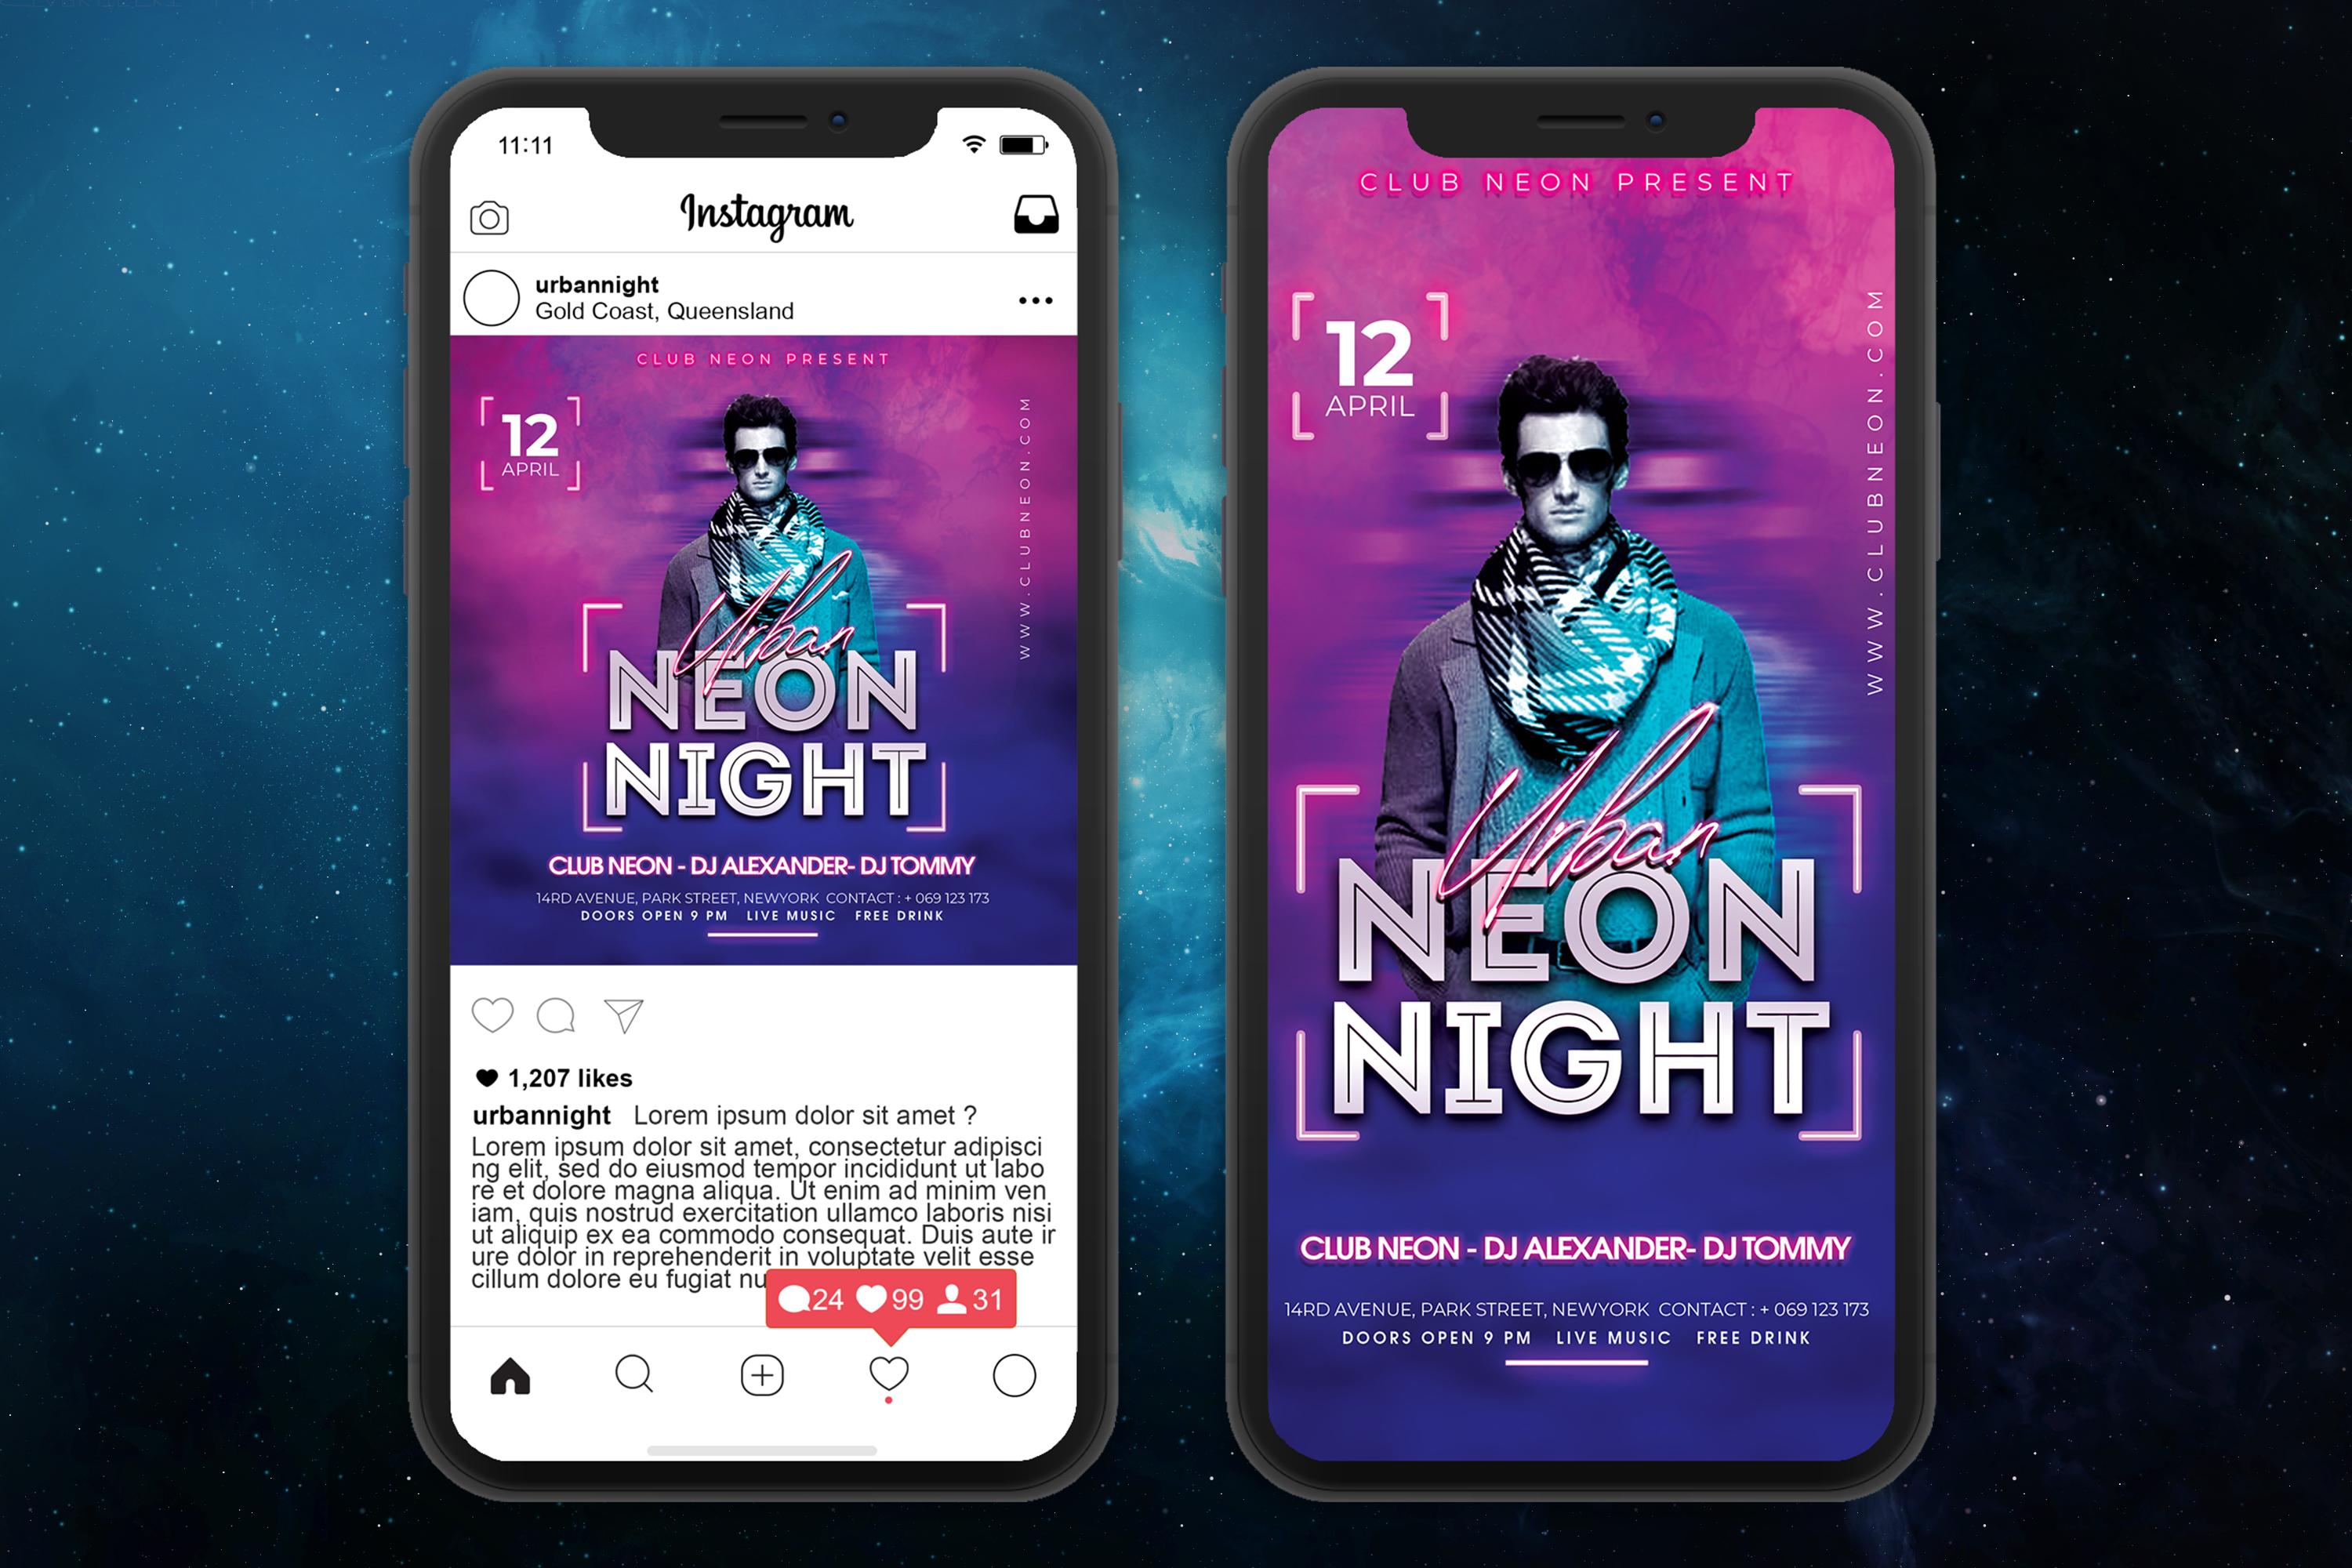 Neon Night Party Flyer Template example image 4